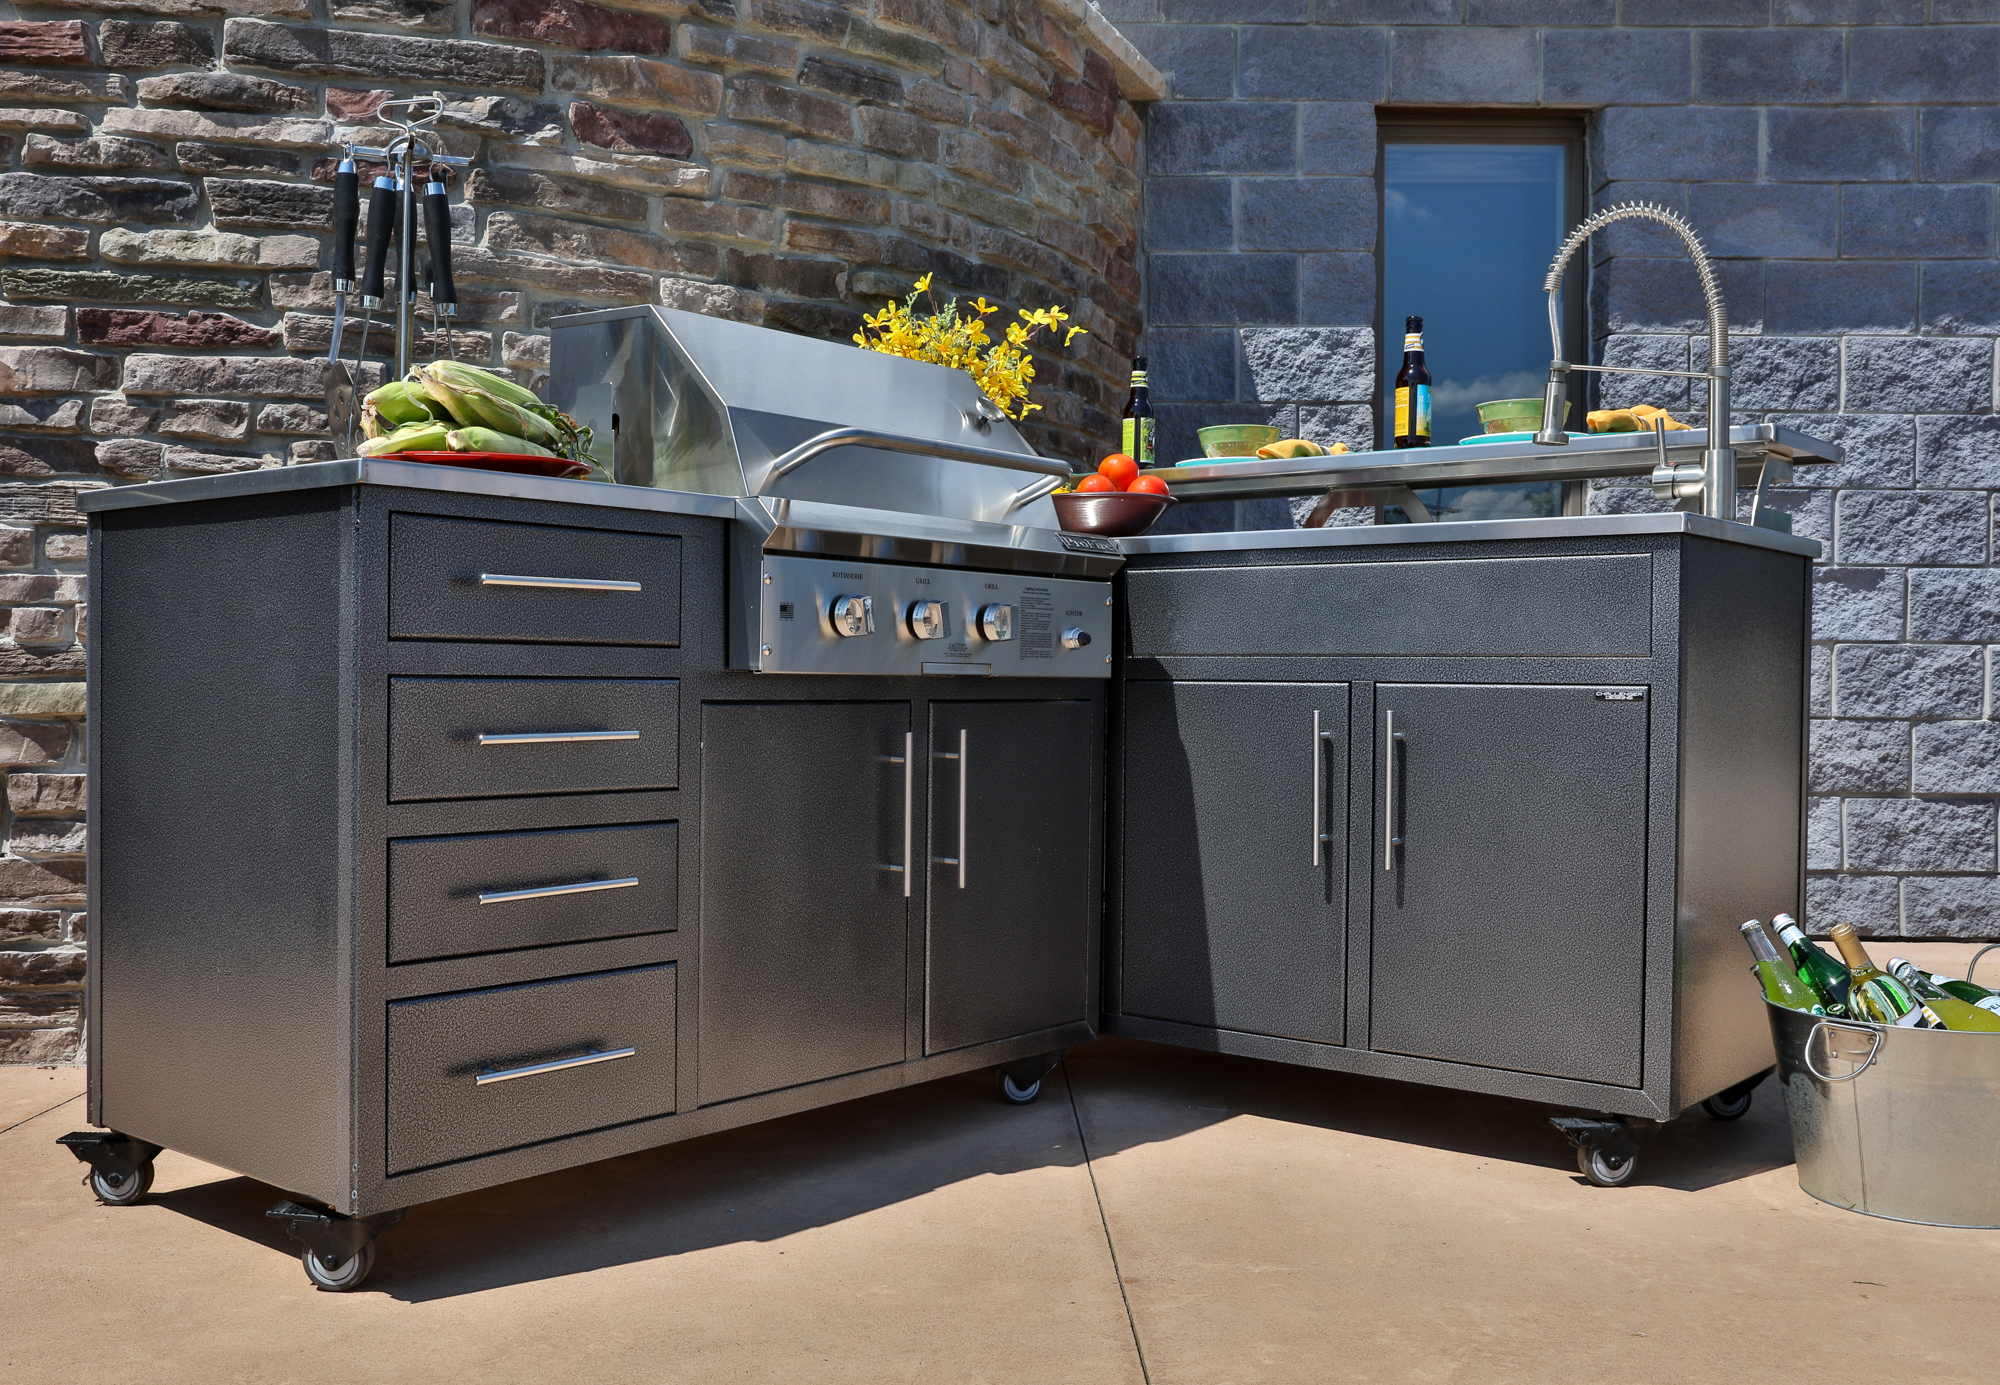 Permalink to 23 nice photos of Modular Outdoor Kitchen